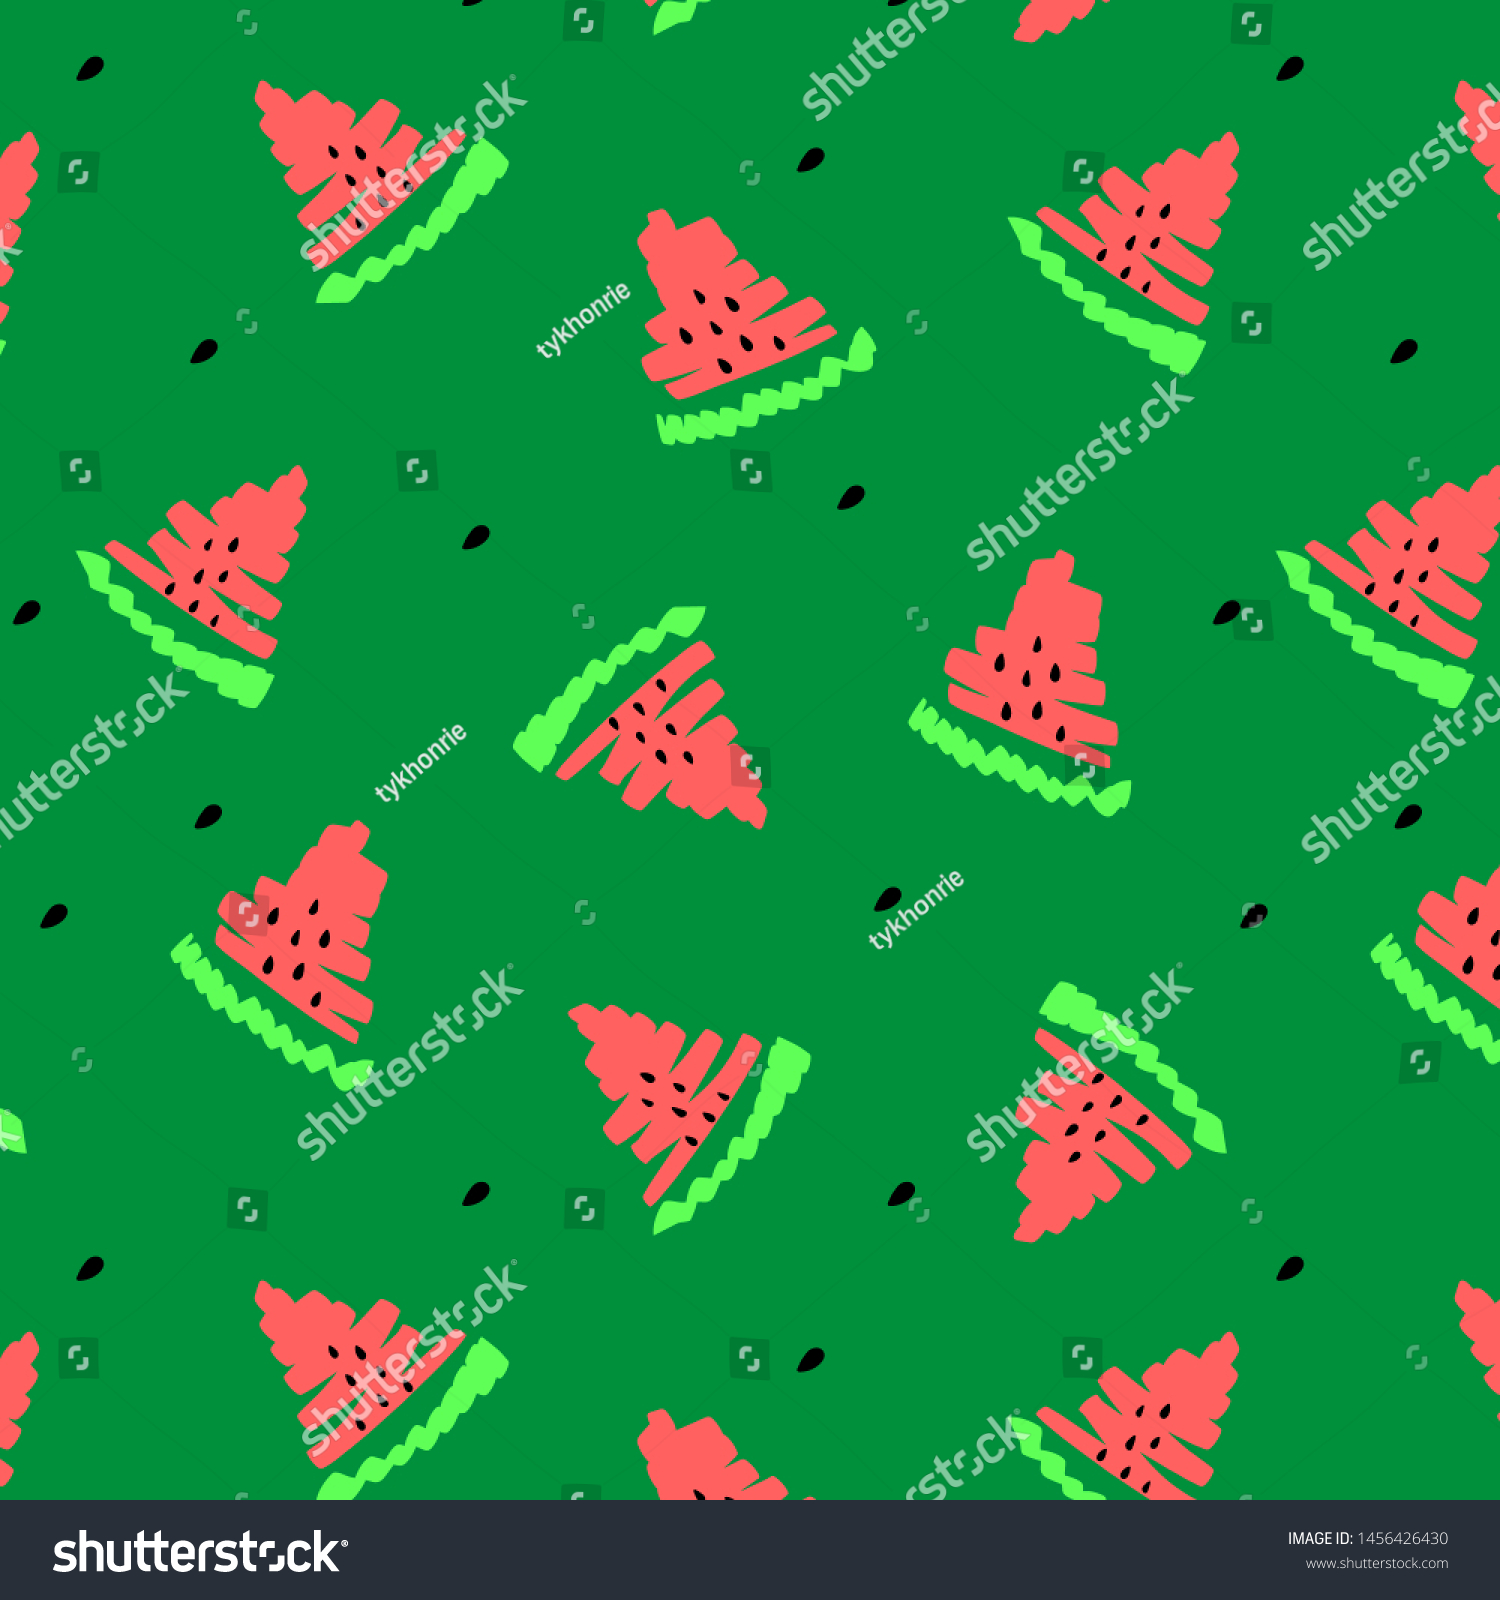 Red Watermelons Seamless pattern raster illustration green background, black seeds design. Hand drawn summer tropical sliced fruits. Good for kids print t shirt, poster banner, template wrapping paper